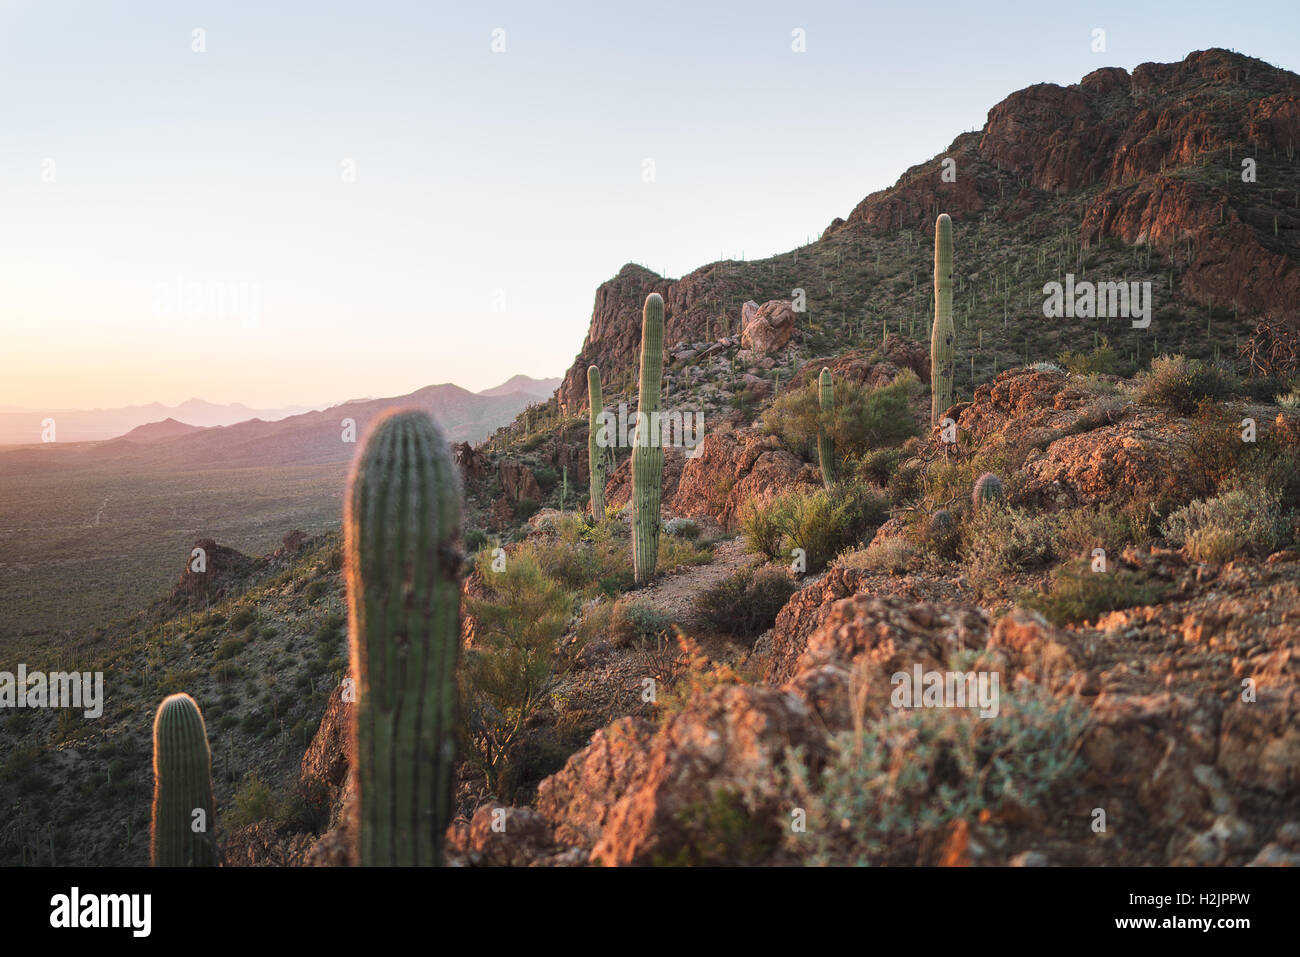 Evening light shines on the desert of Arizona's Saguaro National Park - Stock Image